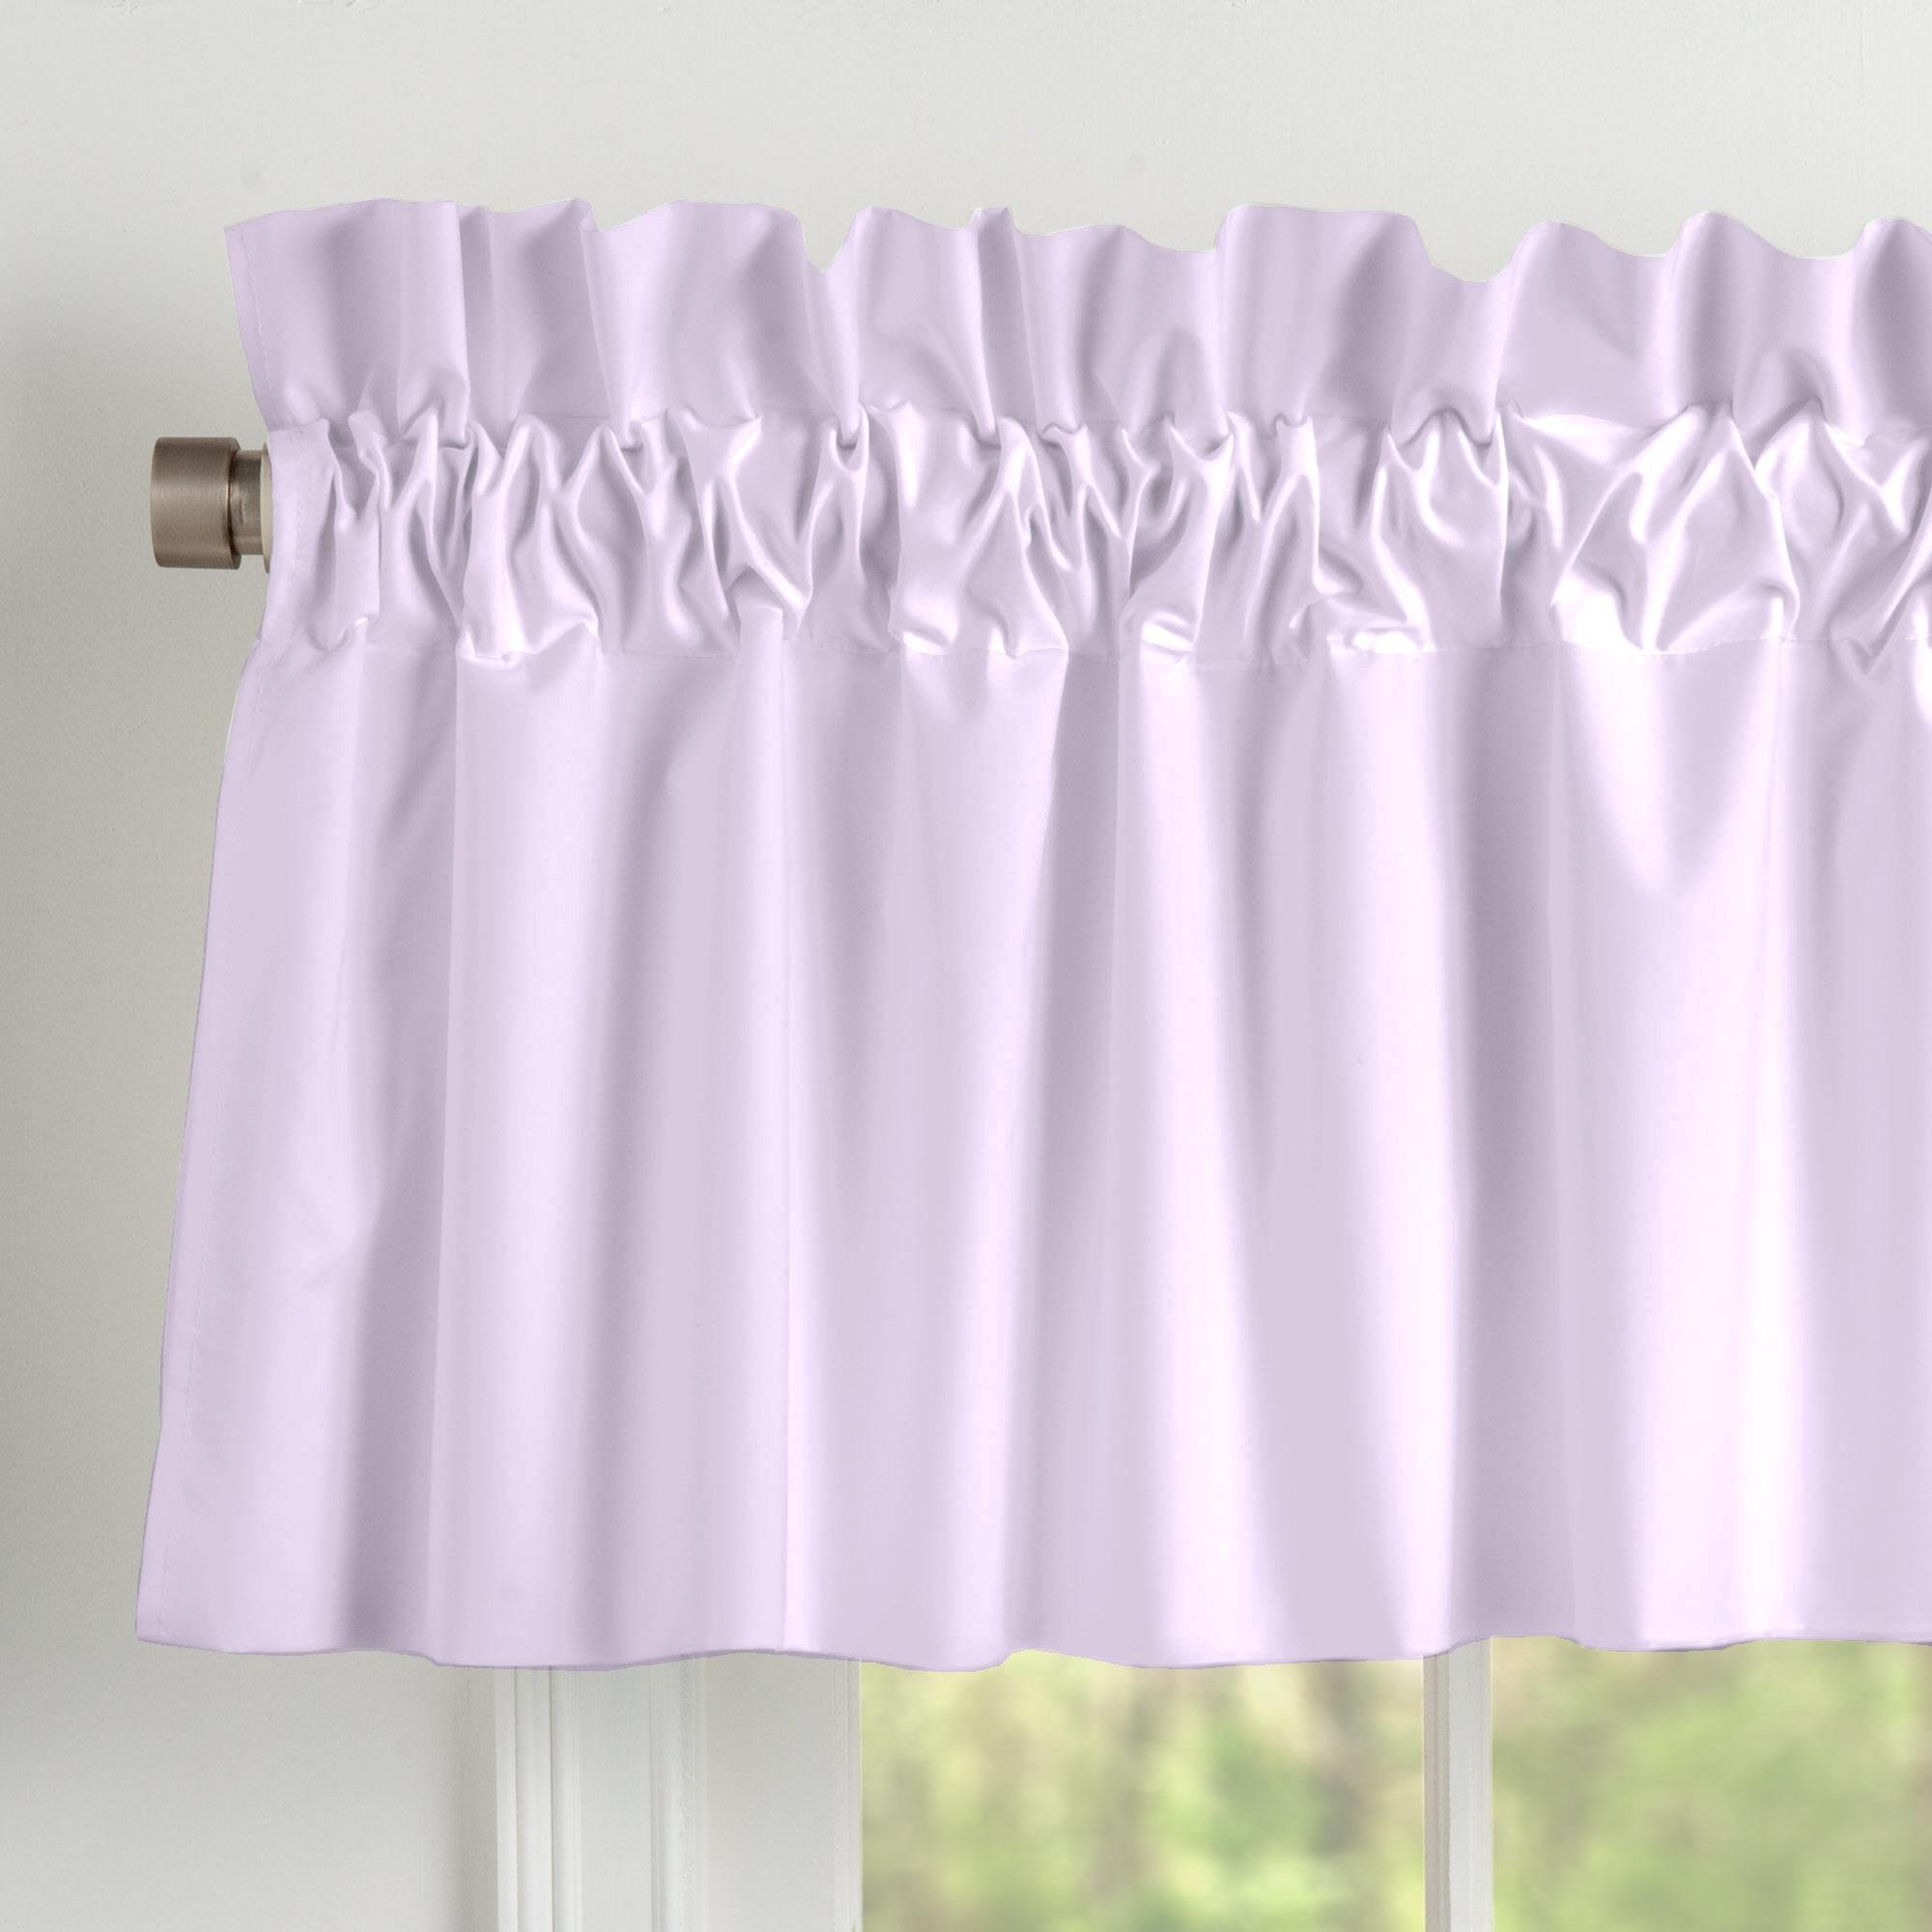 Carousel Designs Solid Lilac Window Valance Rod Pocket by Carousel Designs